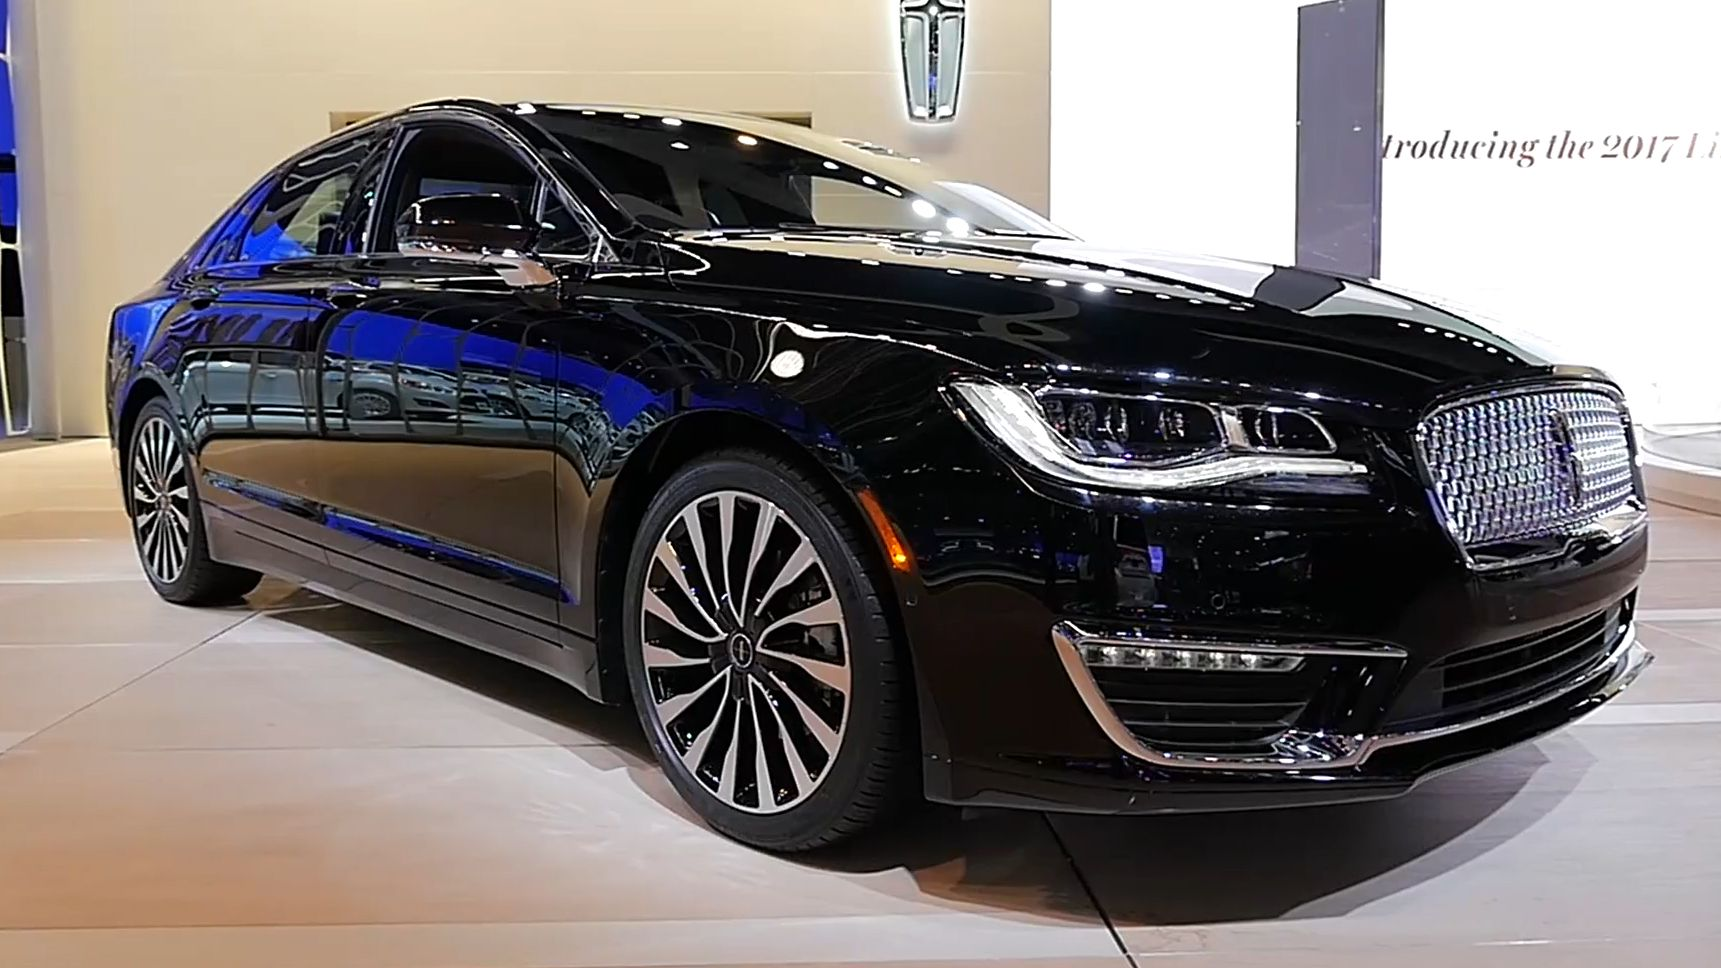 Lincoln For Sale Http Ebay To 2thljwq Lincoln Lincolnforsale Lincoln Mkz Lincoln Mkx Lincoln Cars